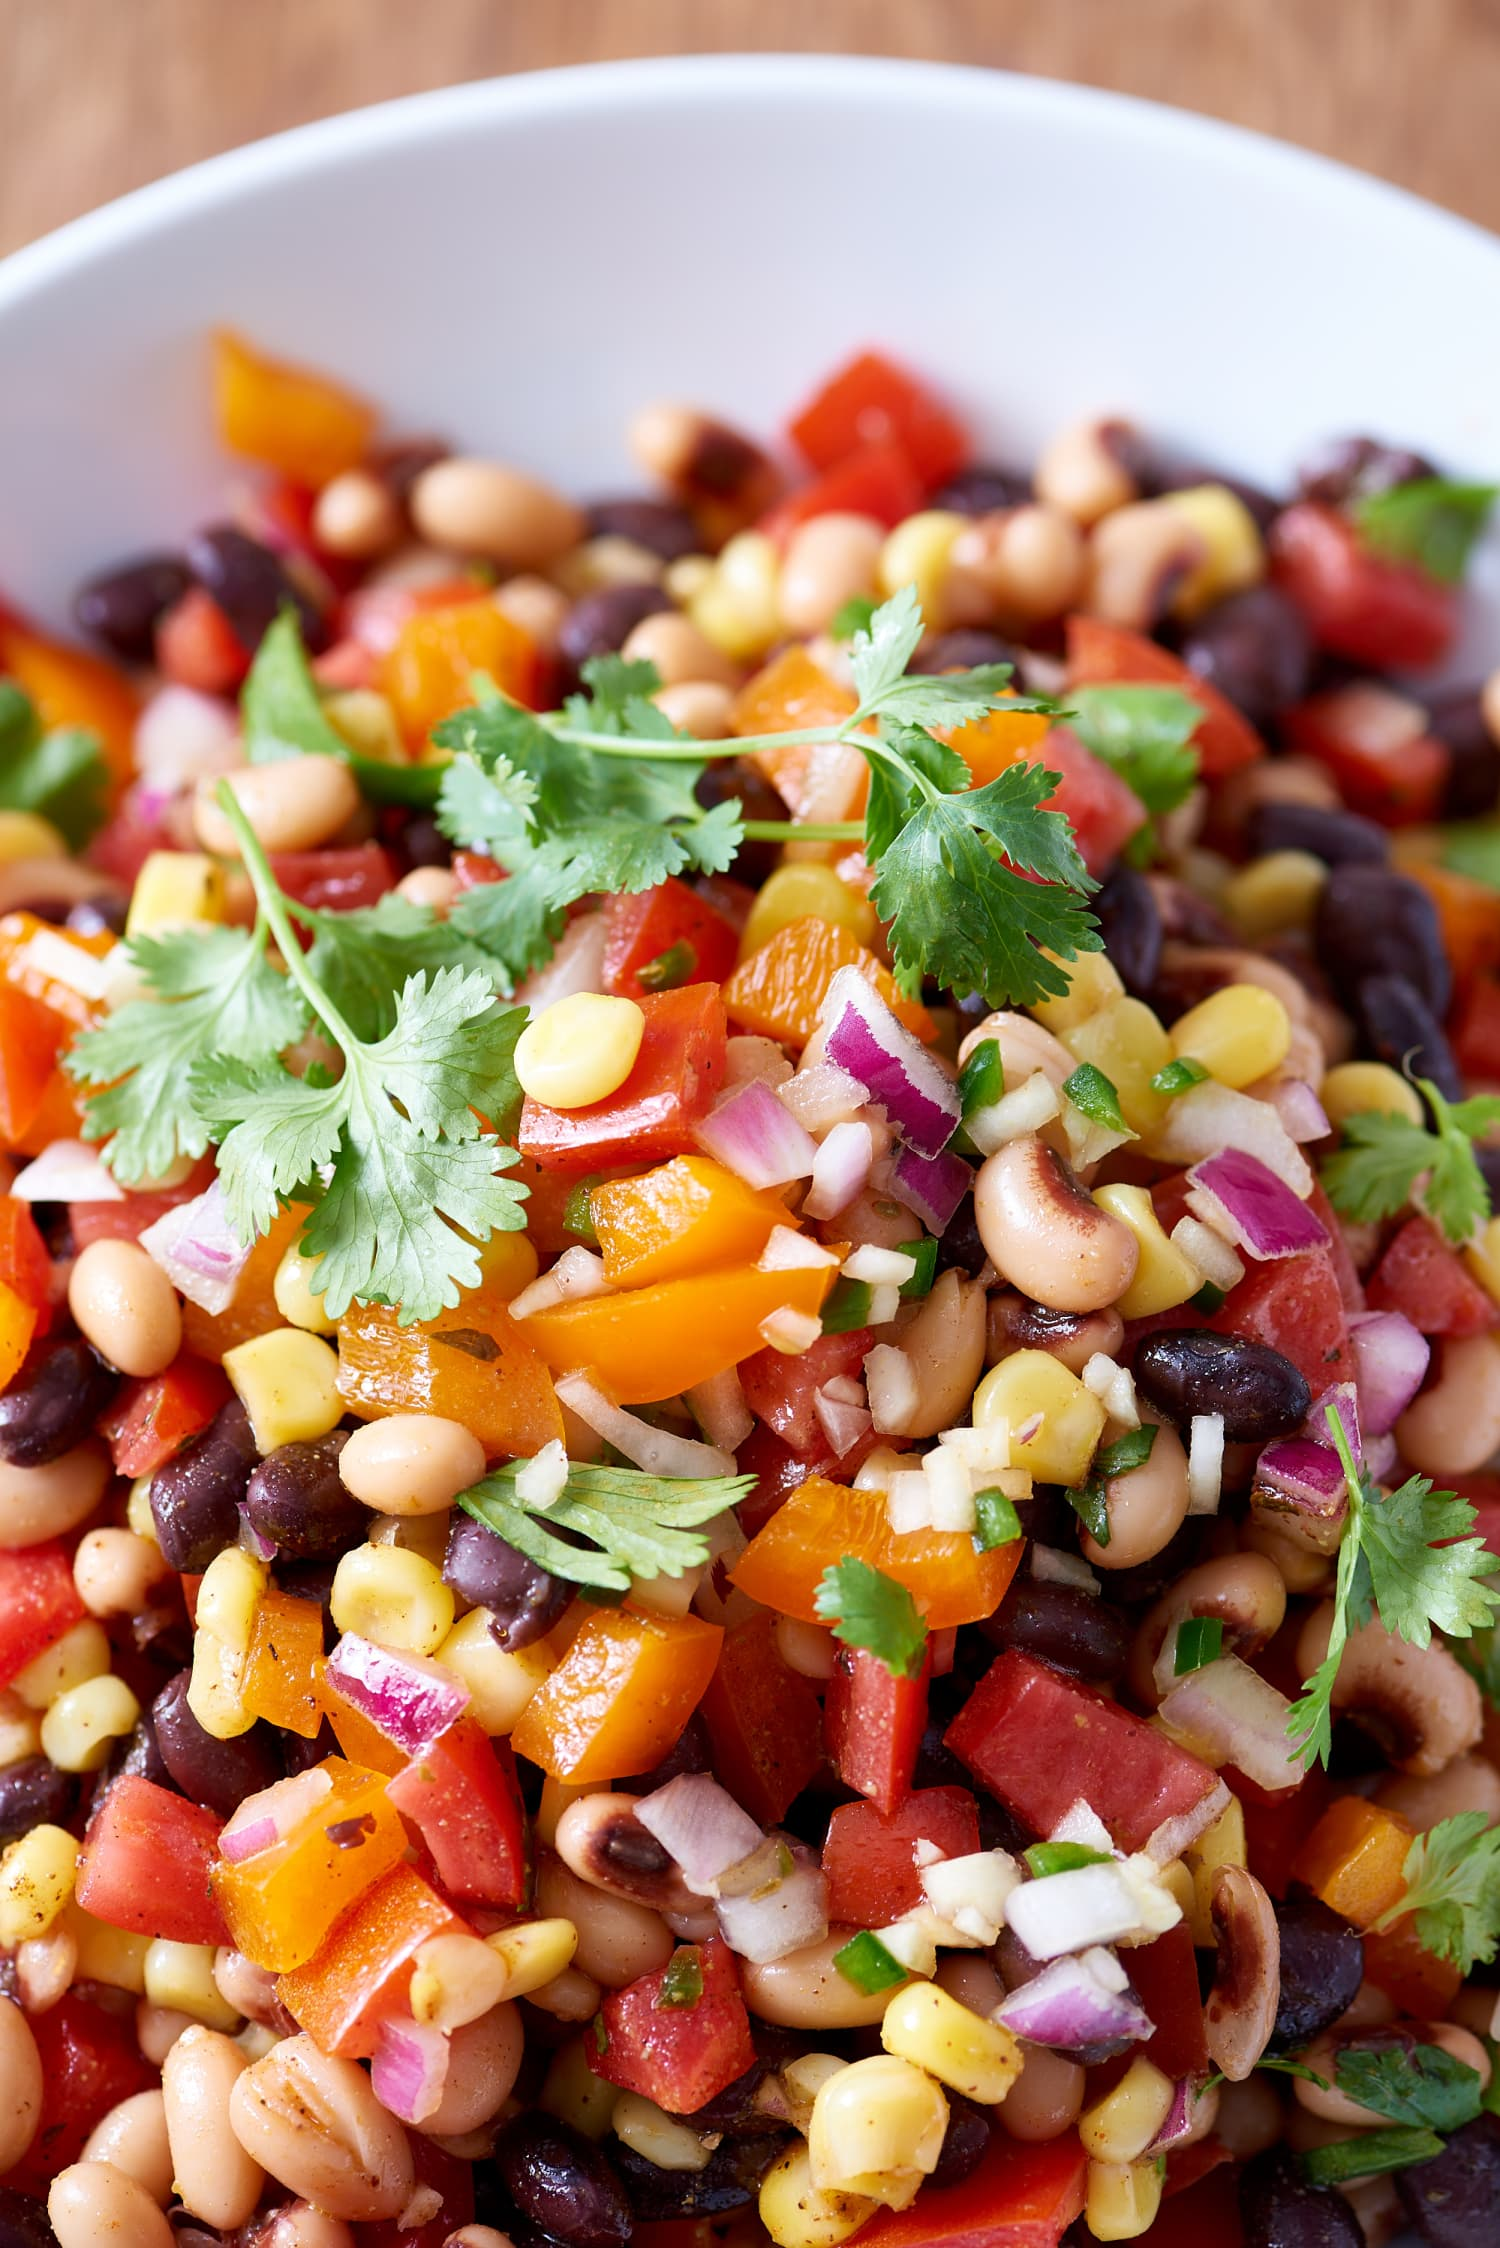 The Universally Perfect, All-Seasons Bean Dish I Bring to Every Potluck